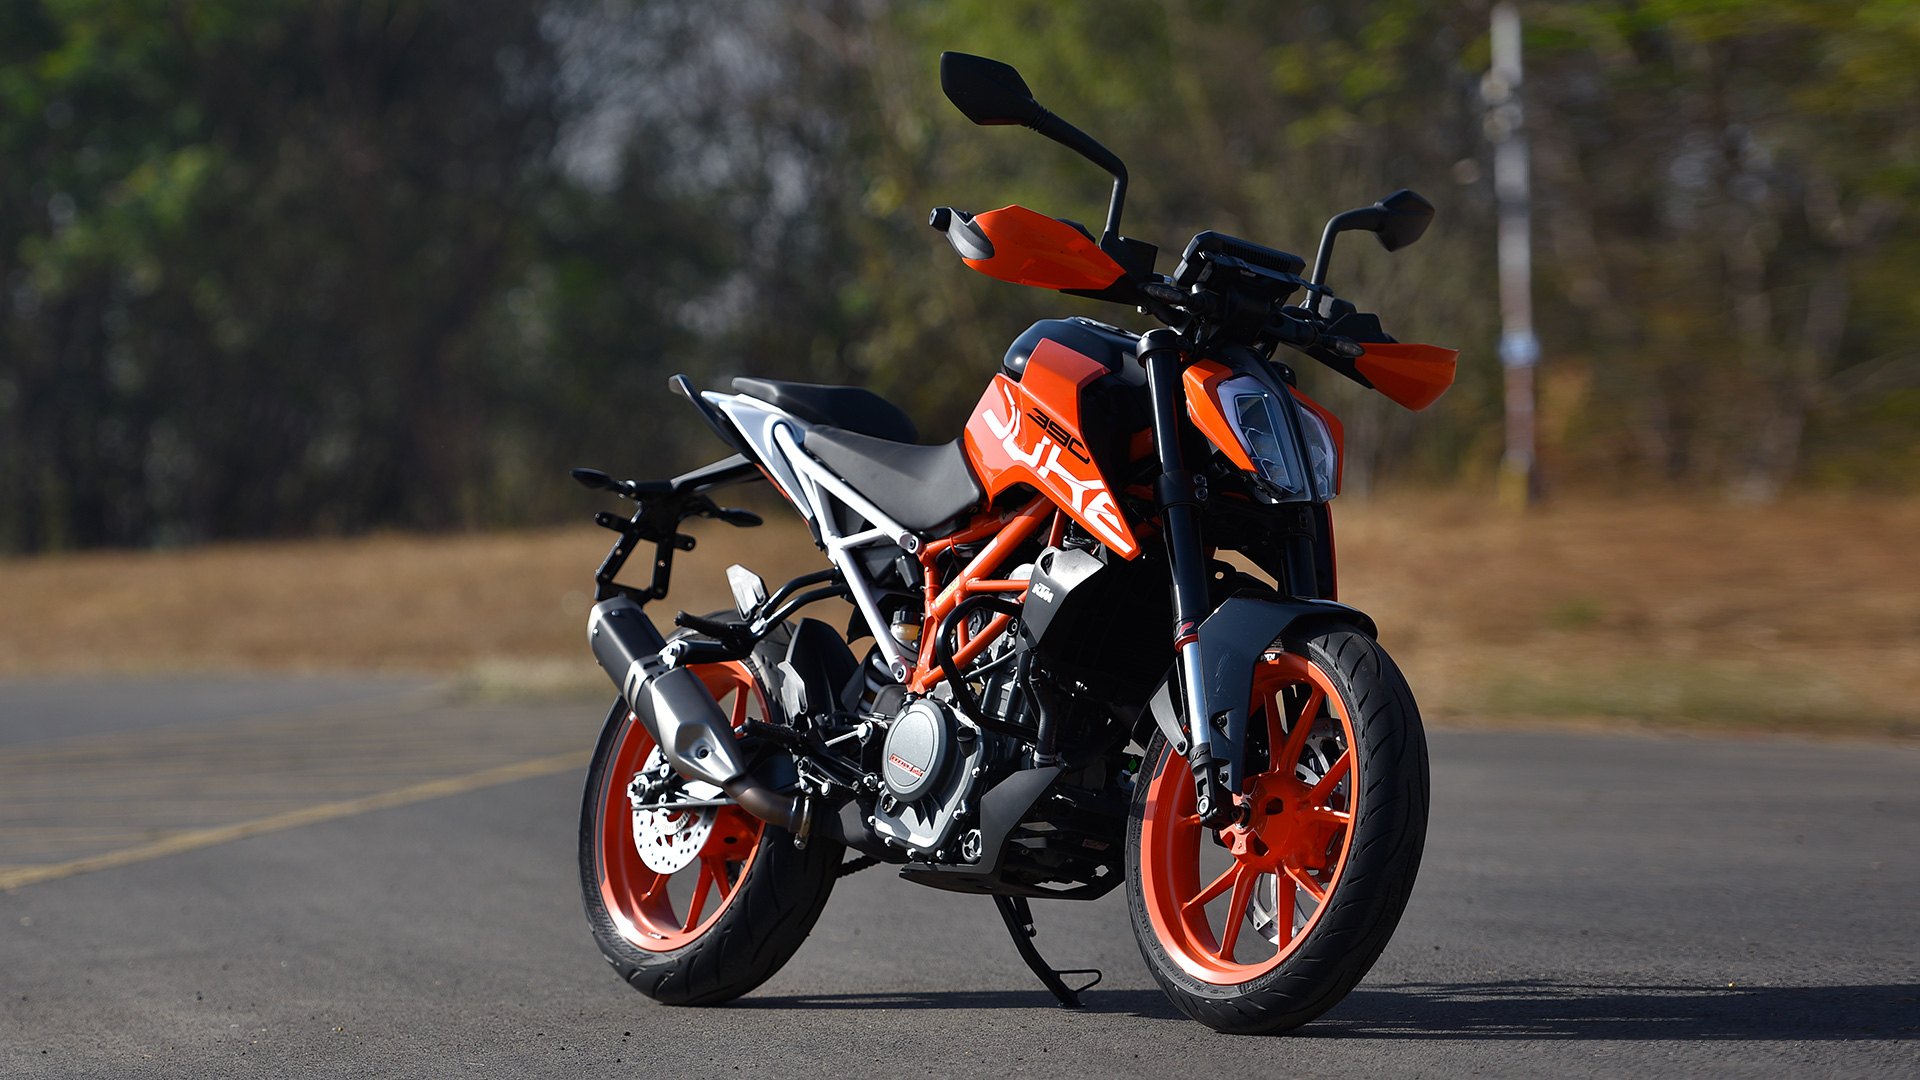 40-408035_ktm-390-duke-2017-price-mileage-reviews-specification